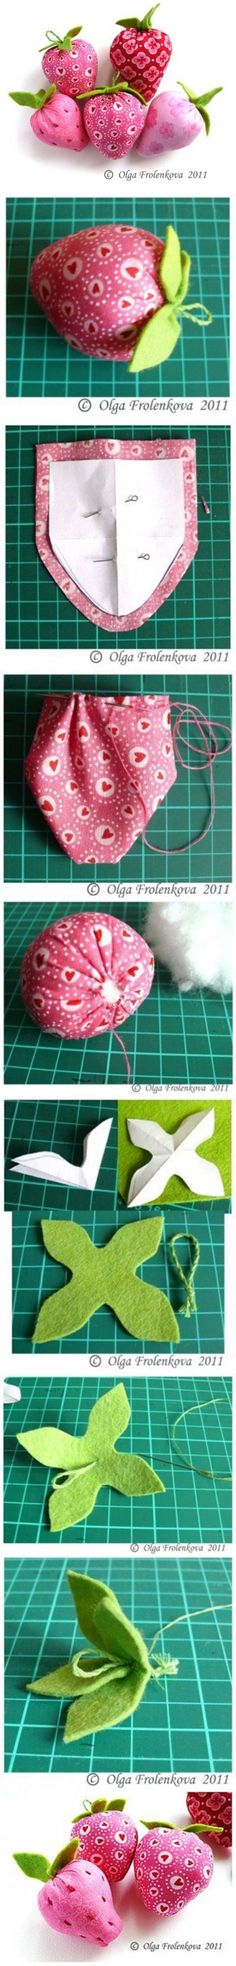 How to make Sew Fabric Strawberry step by step DIY tutorial instructions 400x3333 How to make Sew Fabric Strawberry step by step DIY tutoria...